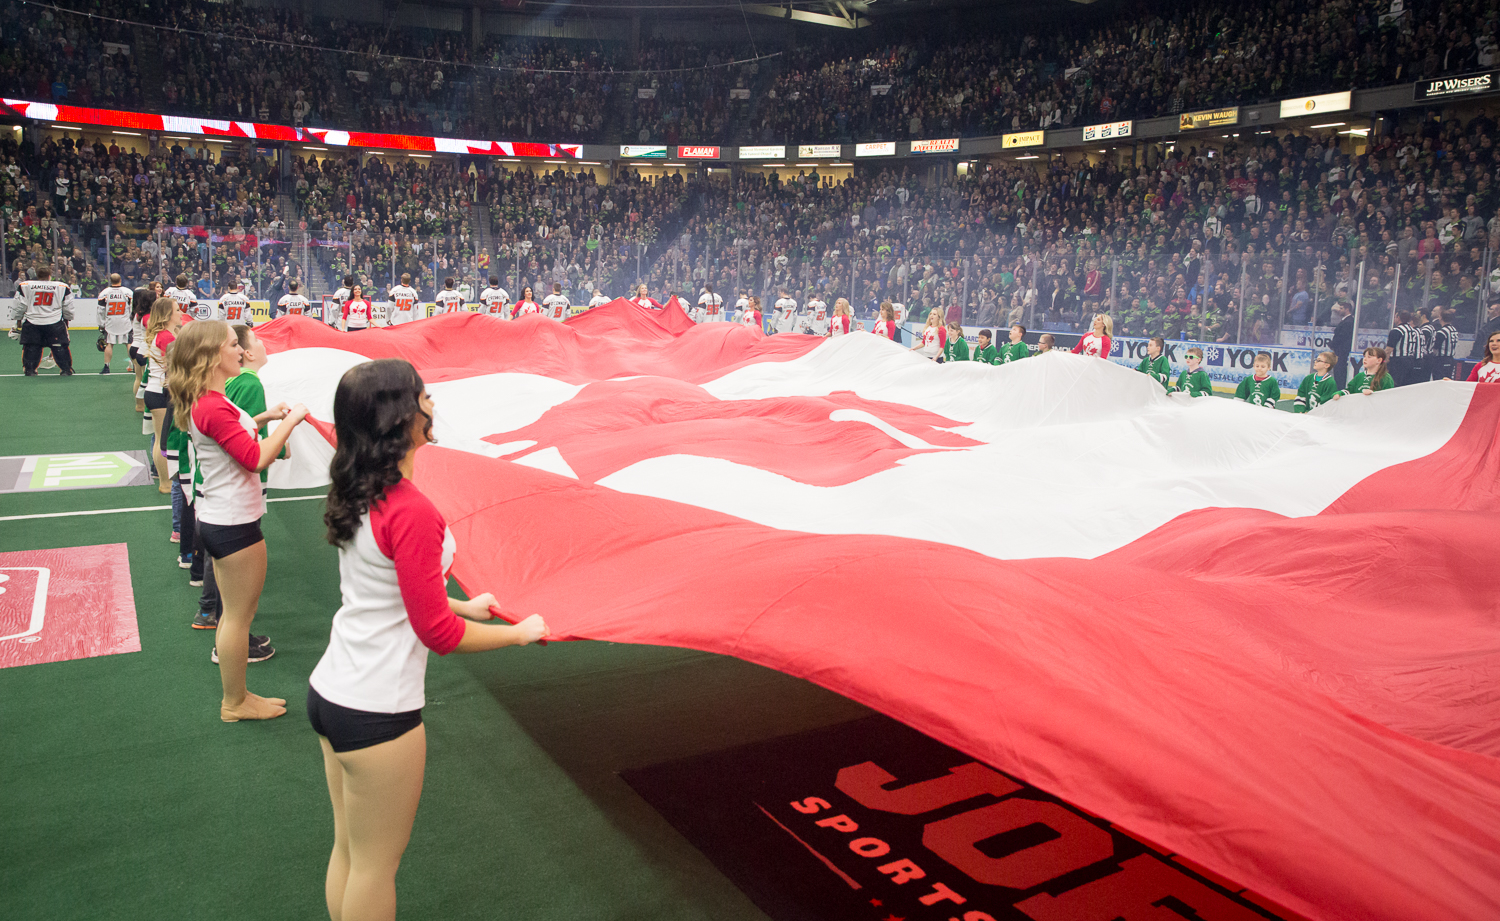 The Sask Crush Dancers also had special edition shirts and  DJ Anchor  had Canadian artists blasting through the stadium all night long. The crowd took over the Canadian National Anthem with great pride as the mic was raised to the stands after the first verse.